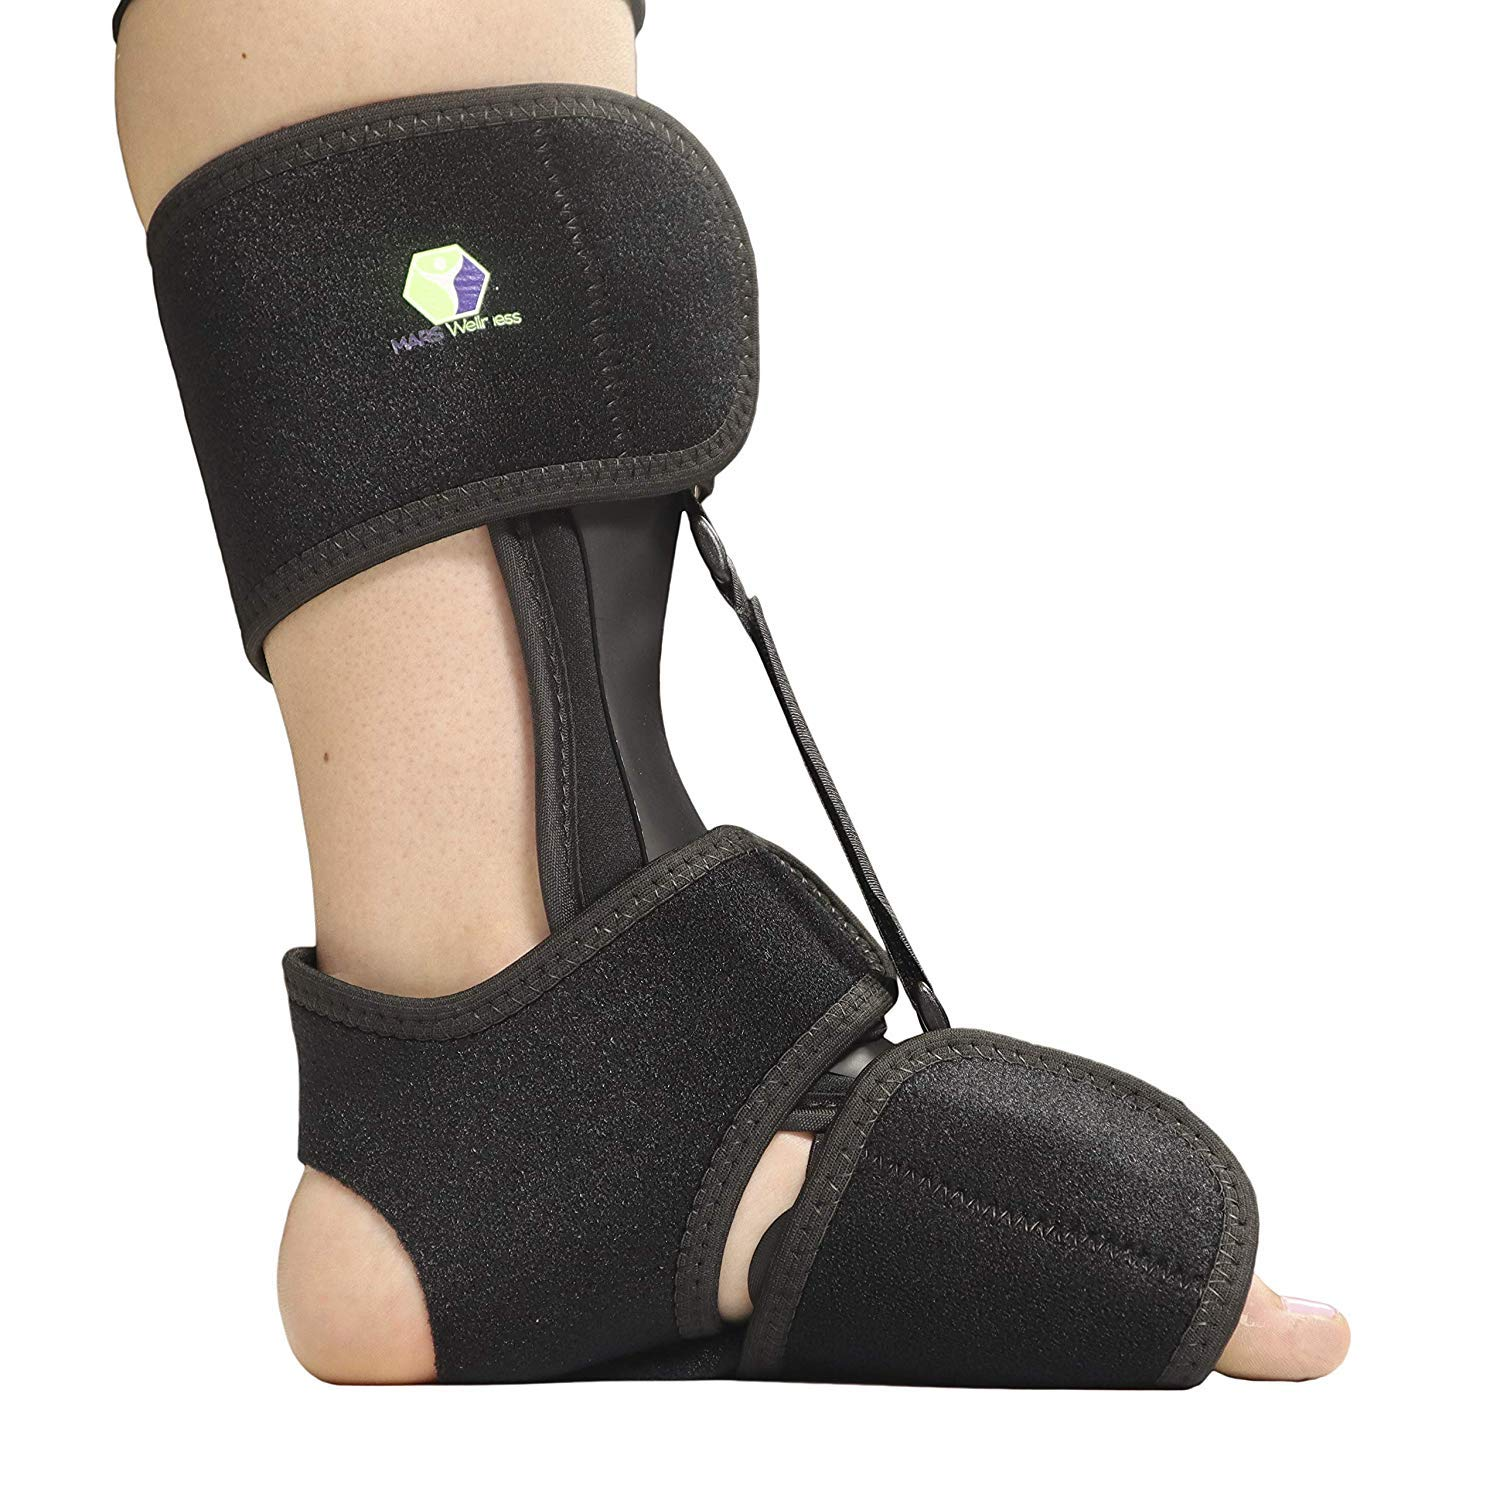 d8cca9a142 Comfort Dorsal Night Splint - Pain Relief from Plantar Fasciitis, Drop Foot,  and Achilles